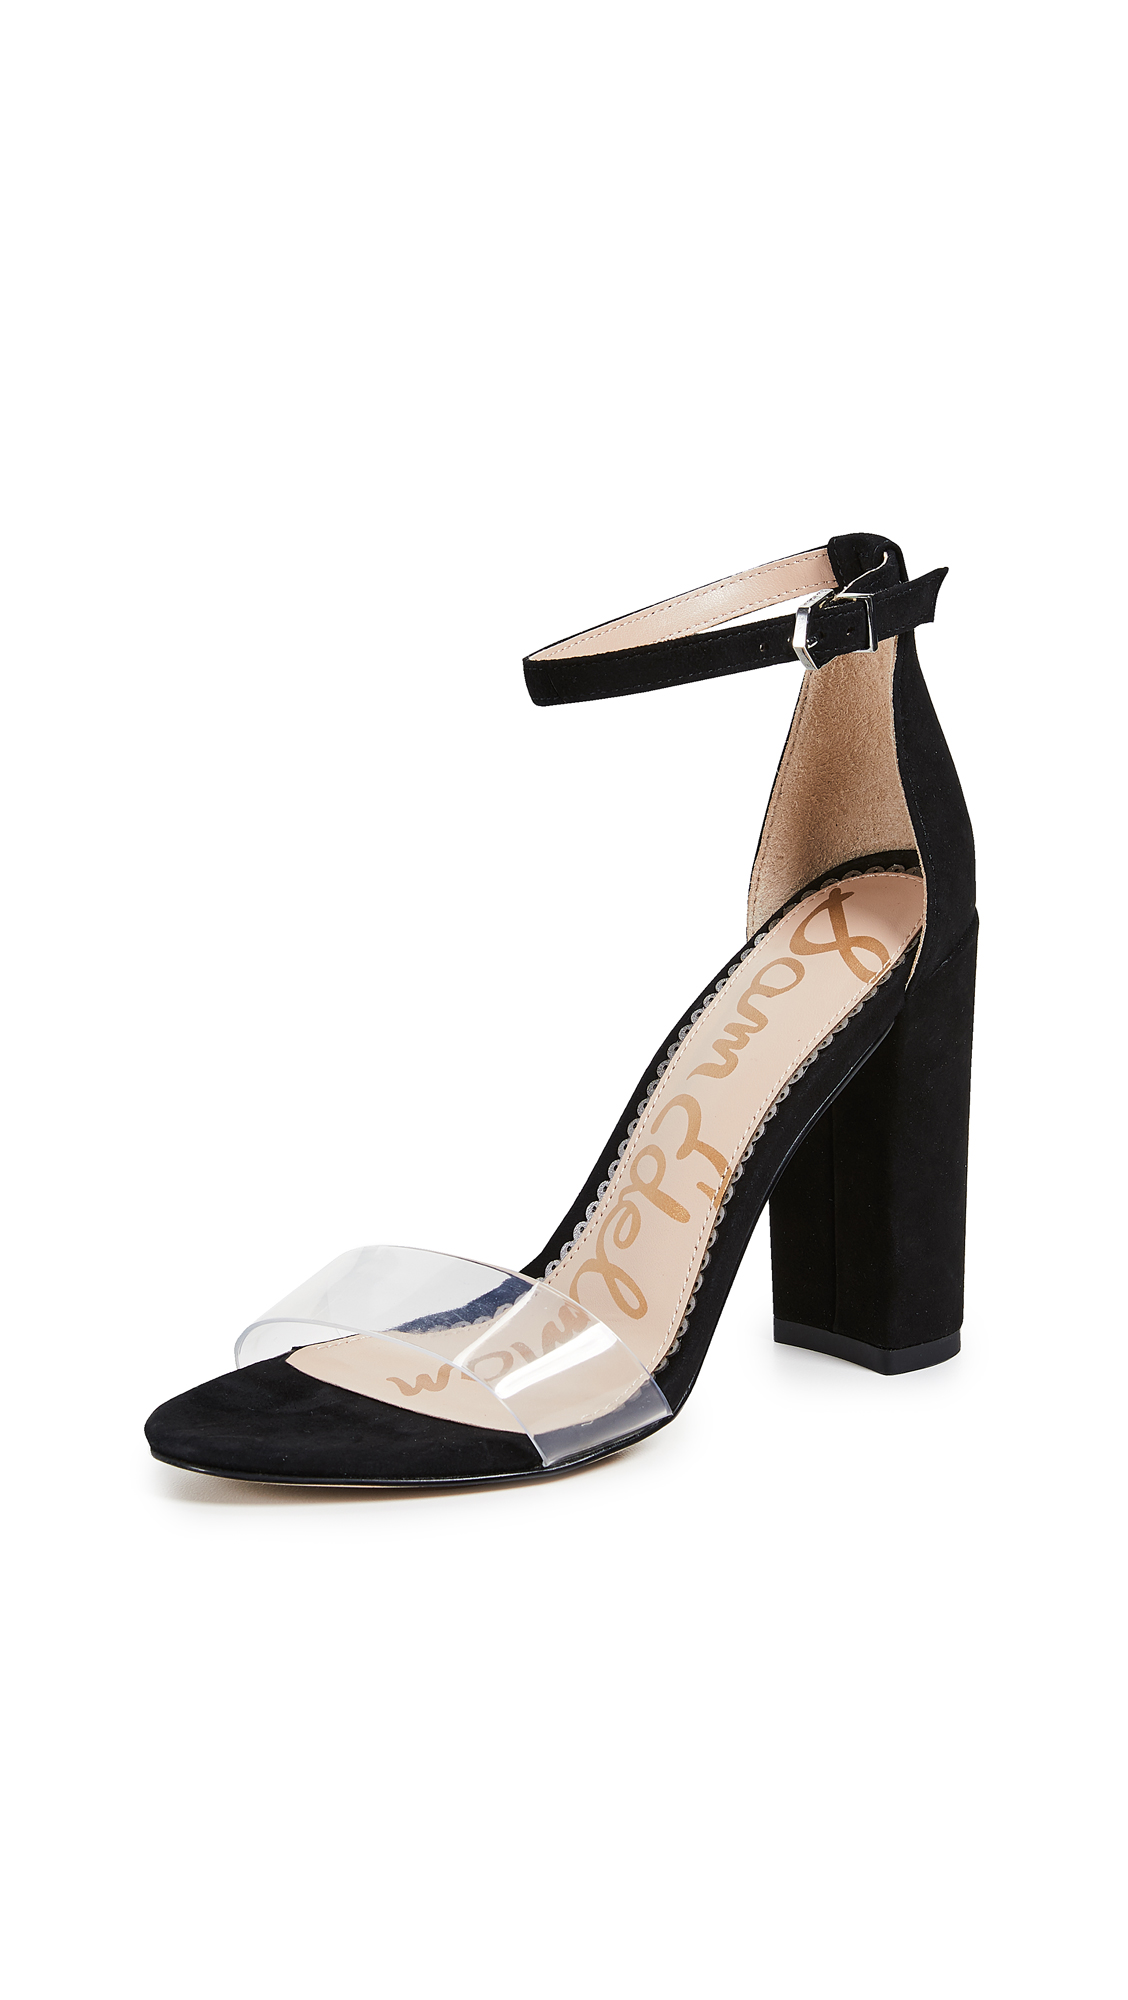 Sam Edelman Yaro Sandals - Clear/Black